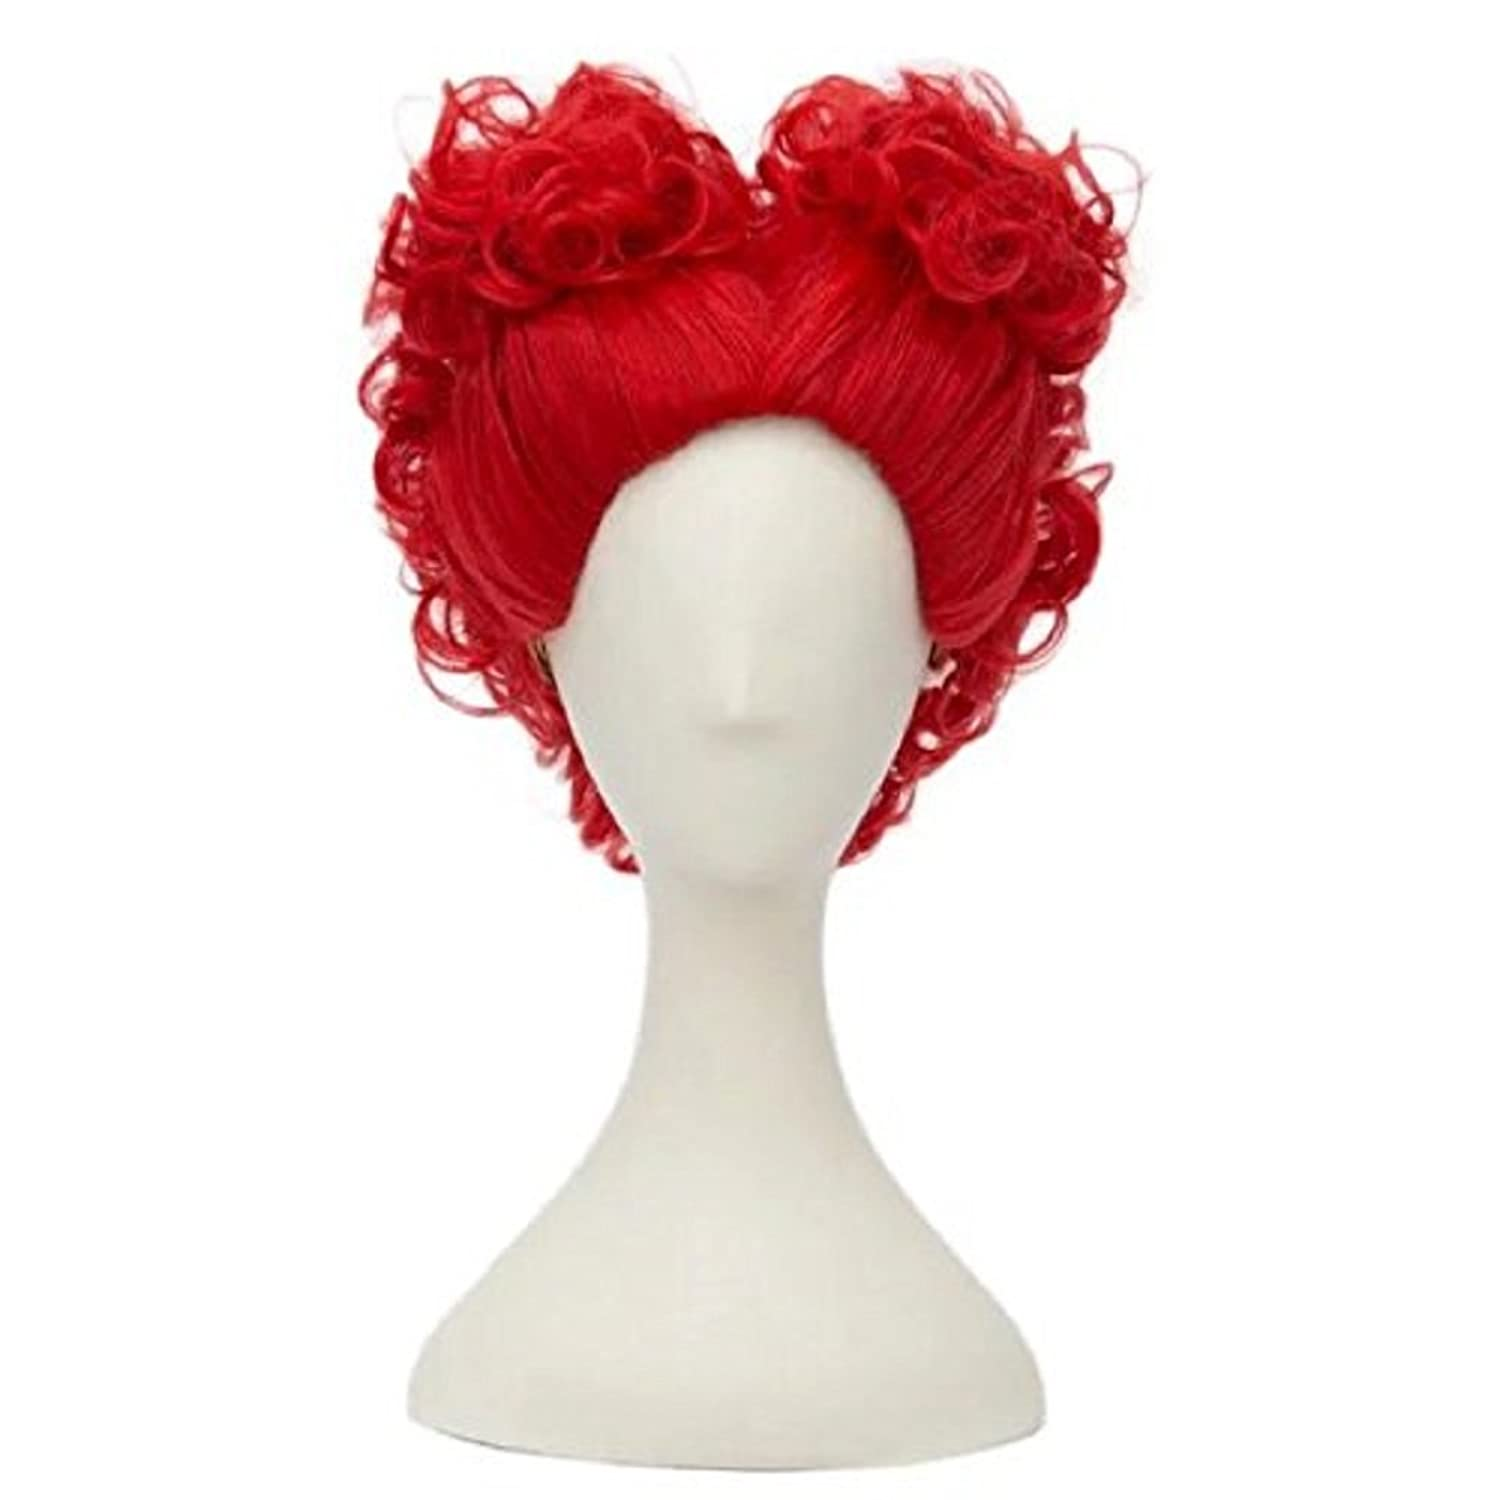 Short Curly Red Hair Cosplay Red Queen Wig